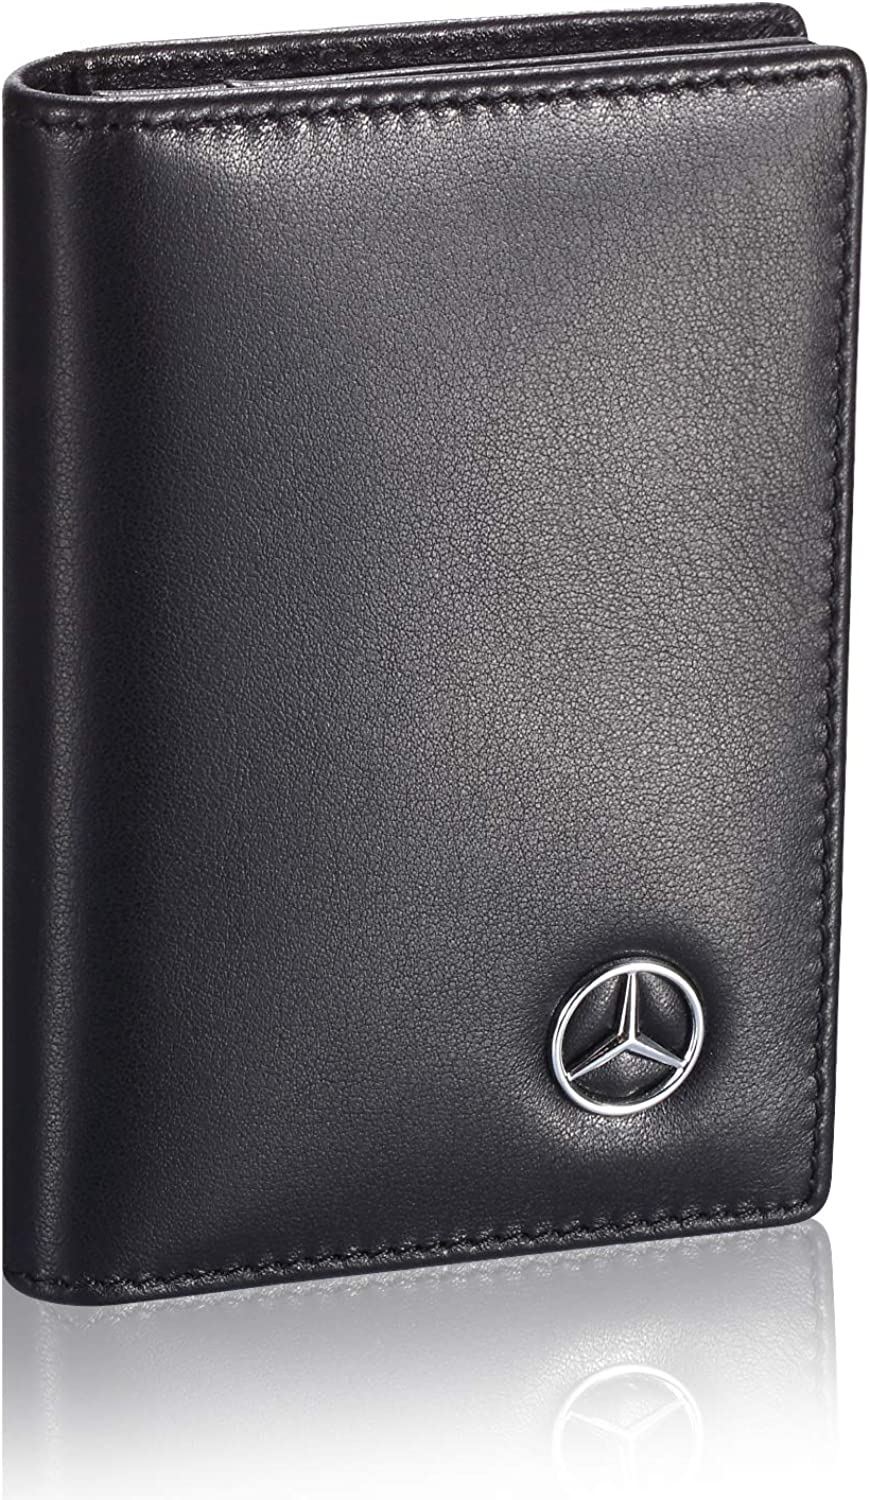 Tuoco Mercedes Benz Business Card Holder with Large Compartment - Full Grain Leather, Black, Small